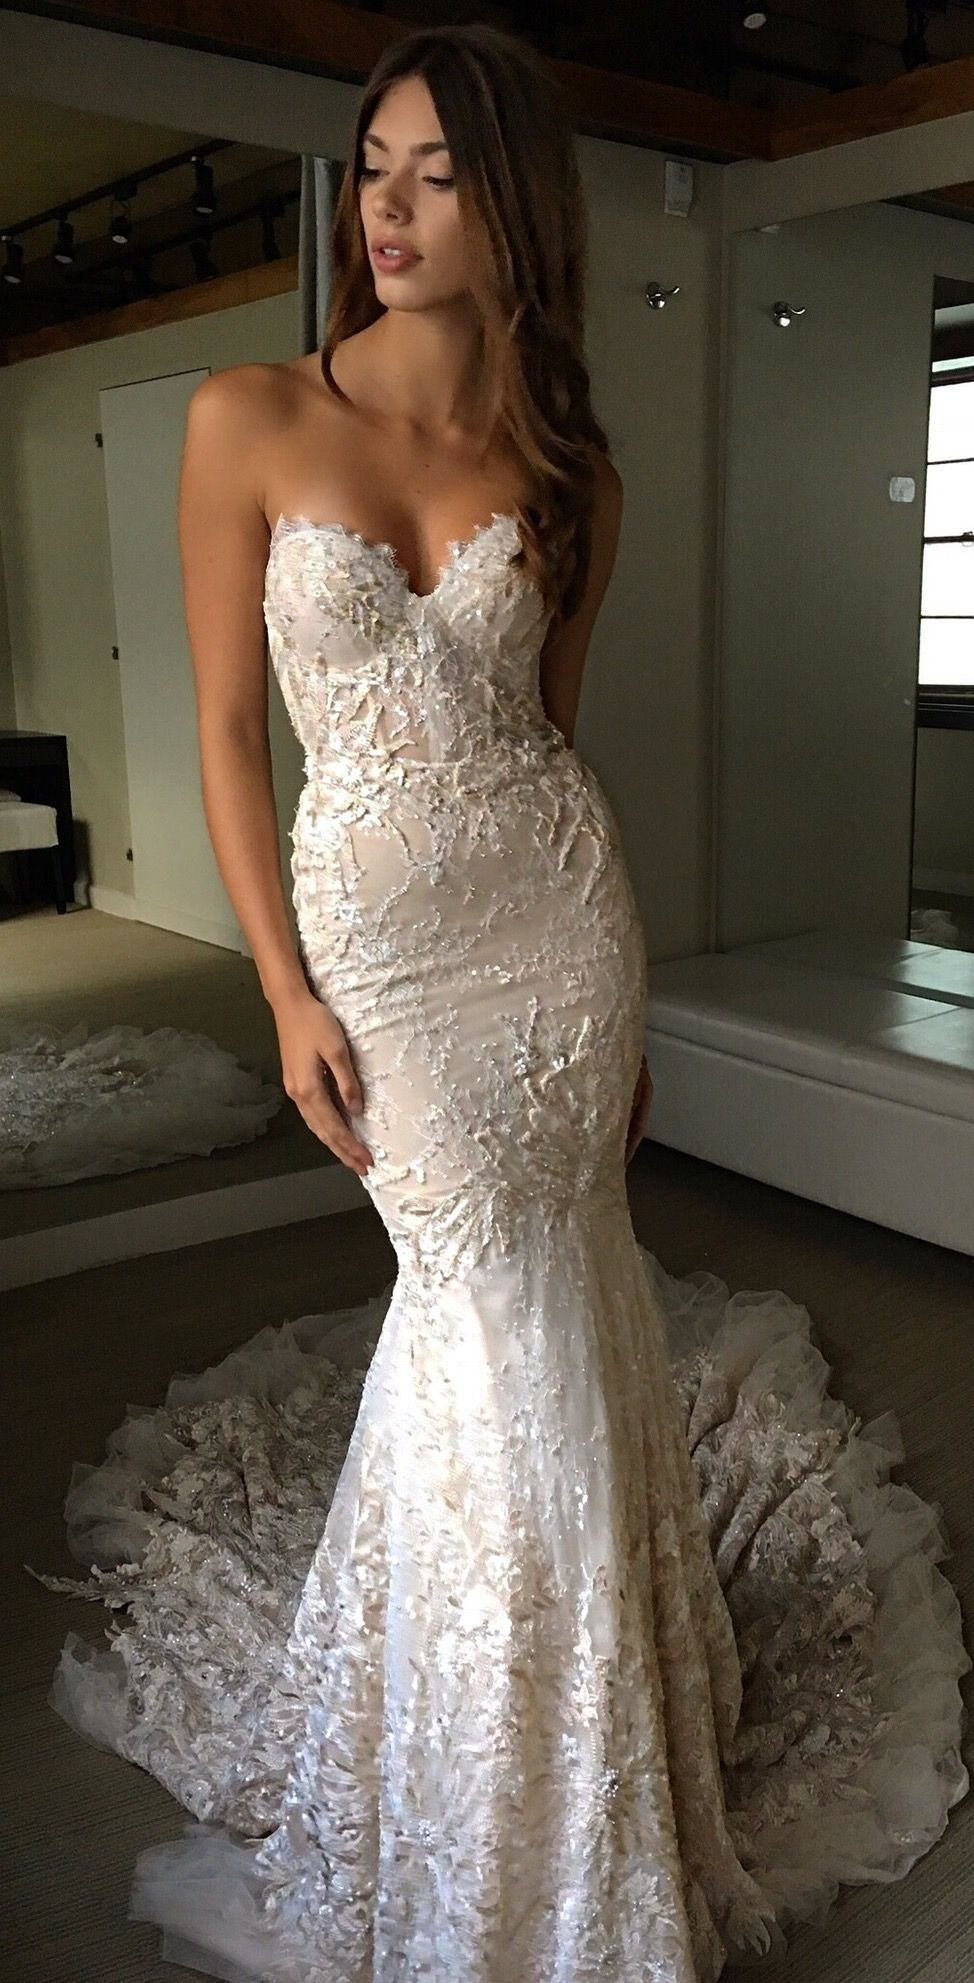 Berta beautiful amazing dresses pinterest daily fashion